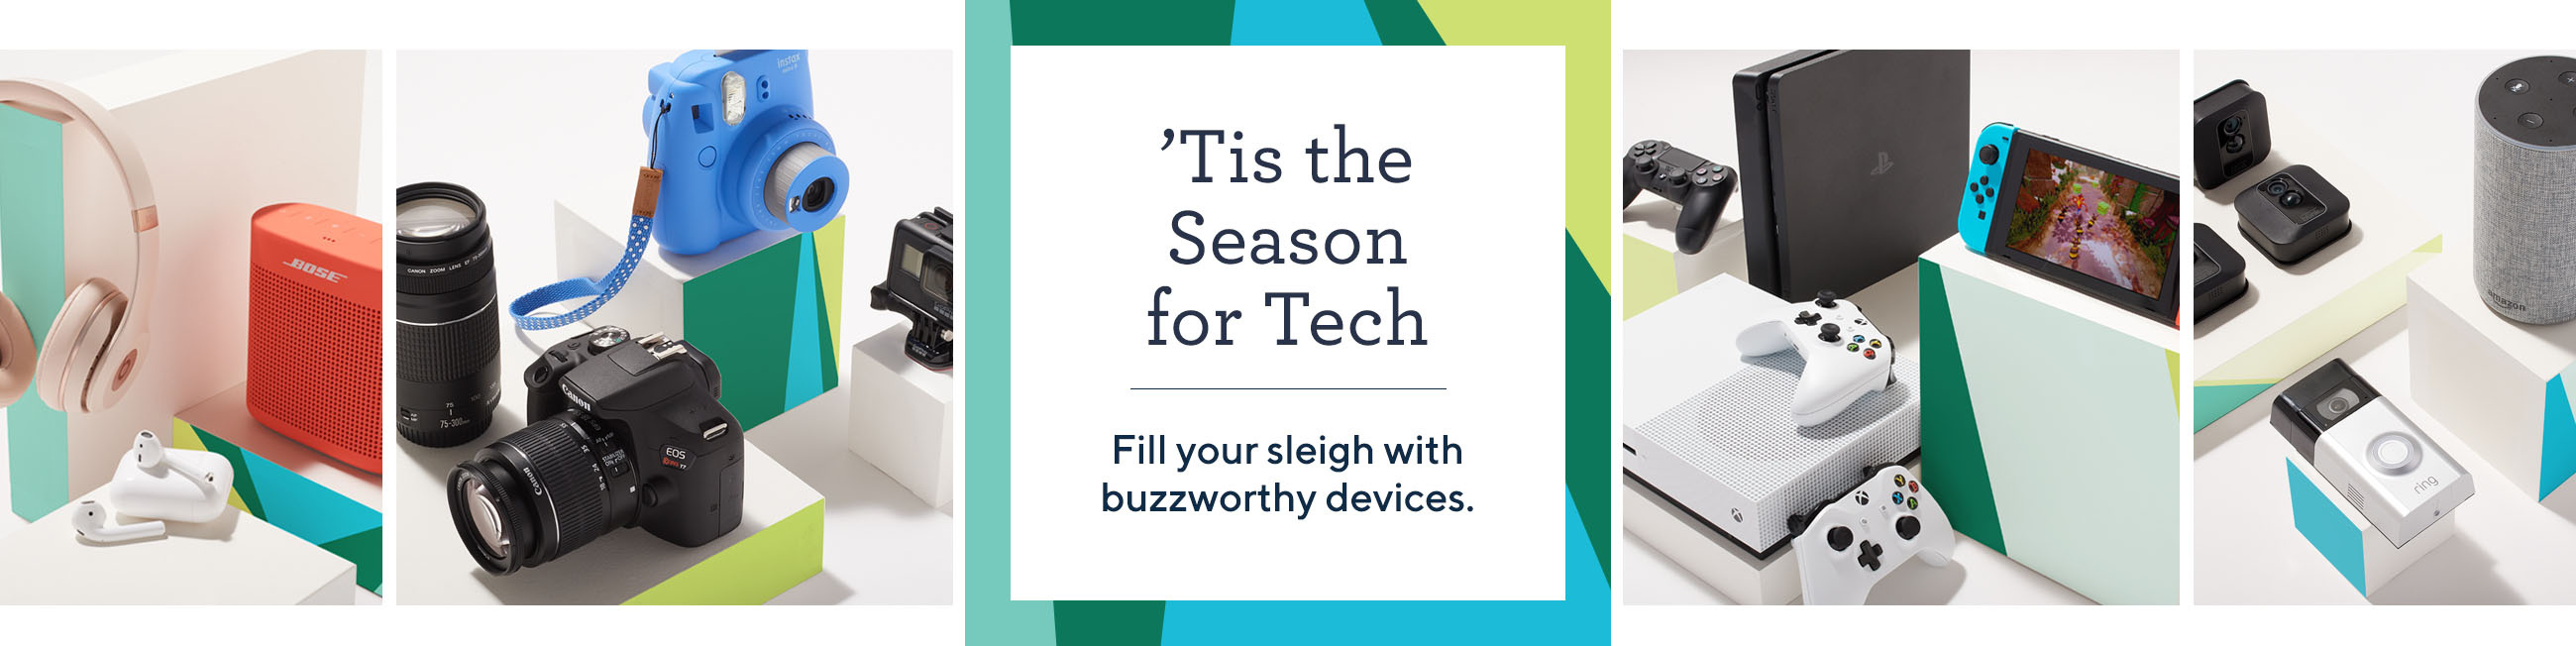 'Tis the Season for Tech.  Fill your sleigh with buzzworthy devices.